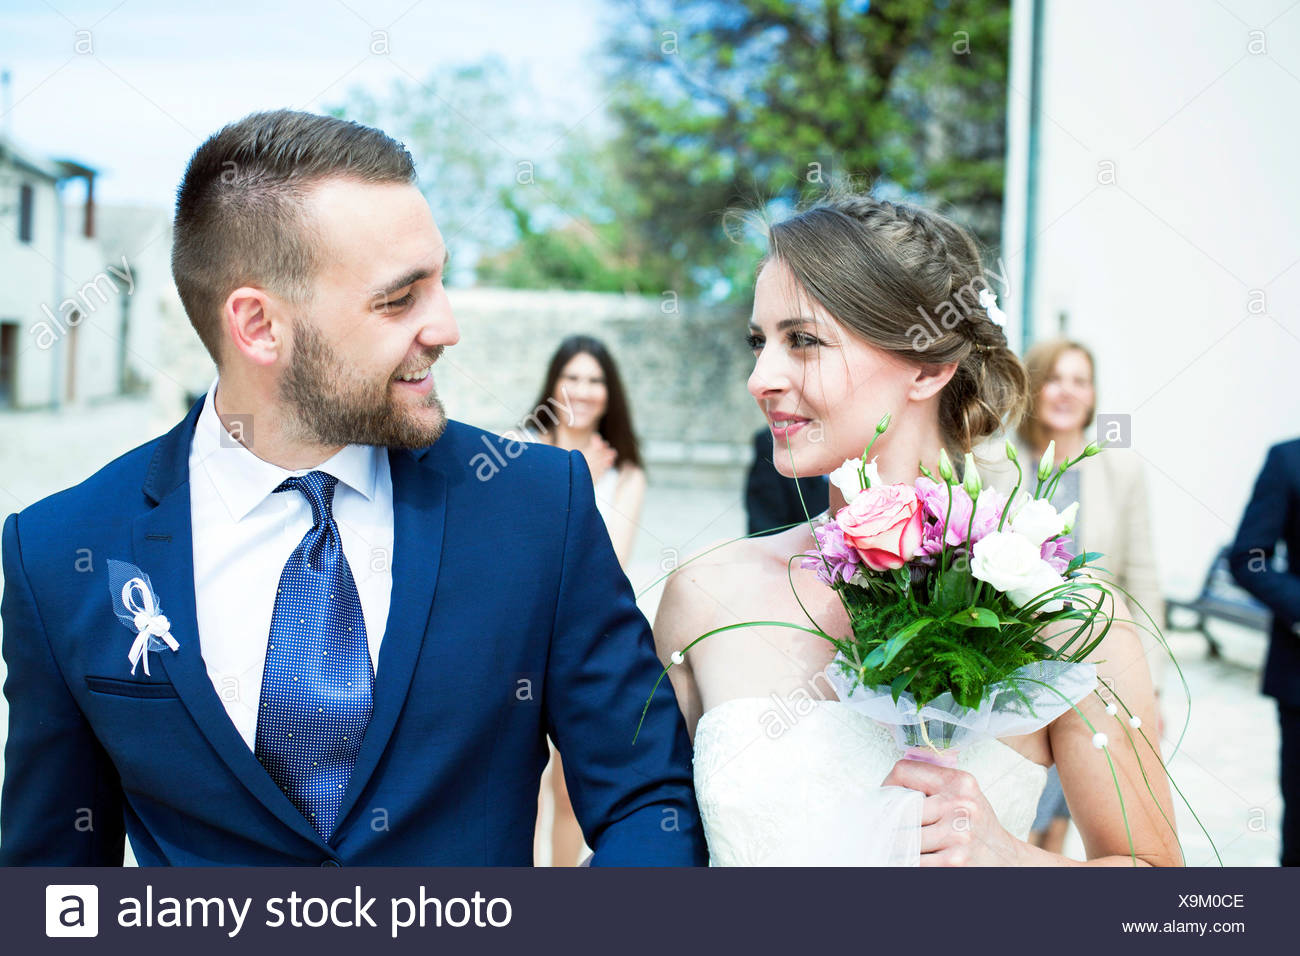 Bride and groom walking with wedding guests in background - Stock Image